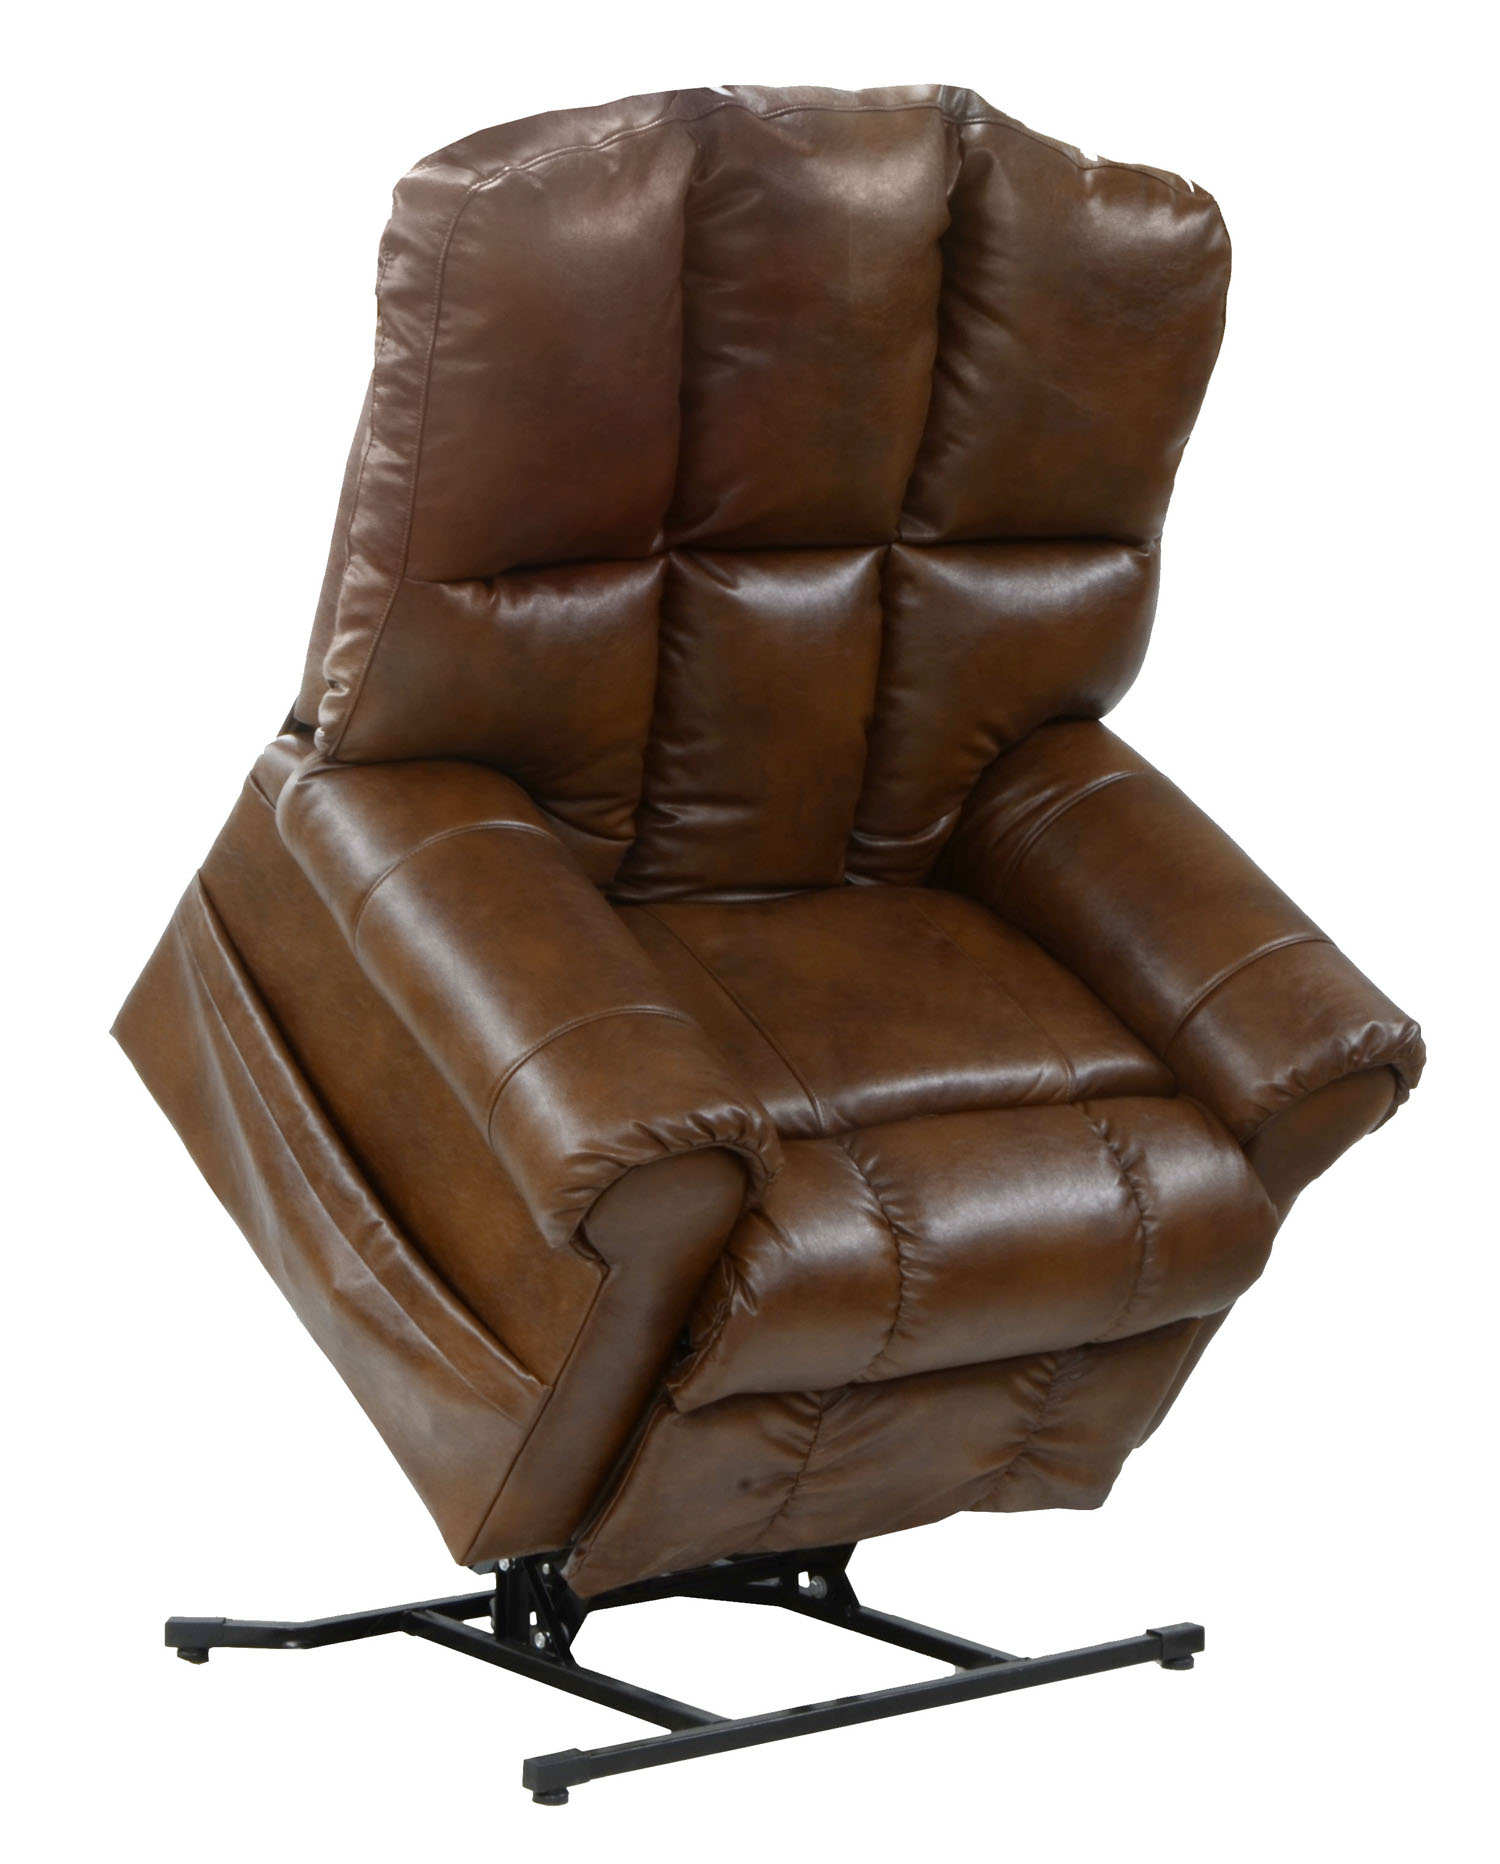 lift chair recliner in leather 4898 power lift chairs recliners